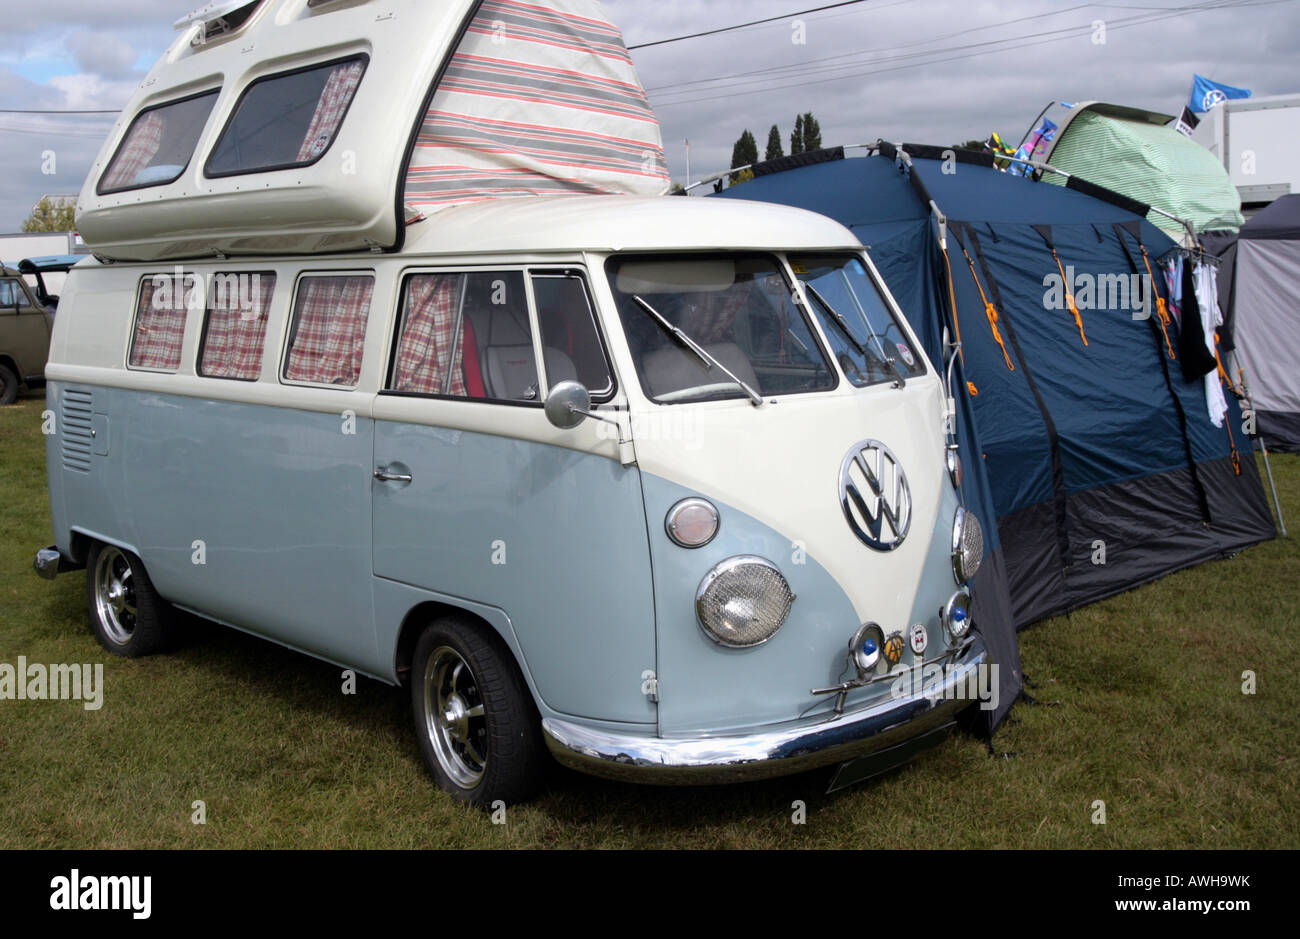 27ce1302e01ba0 The Kombi Volkswagen Camper Van model is a utility vehicle that has  achieved both classic and cult status during its production